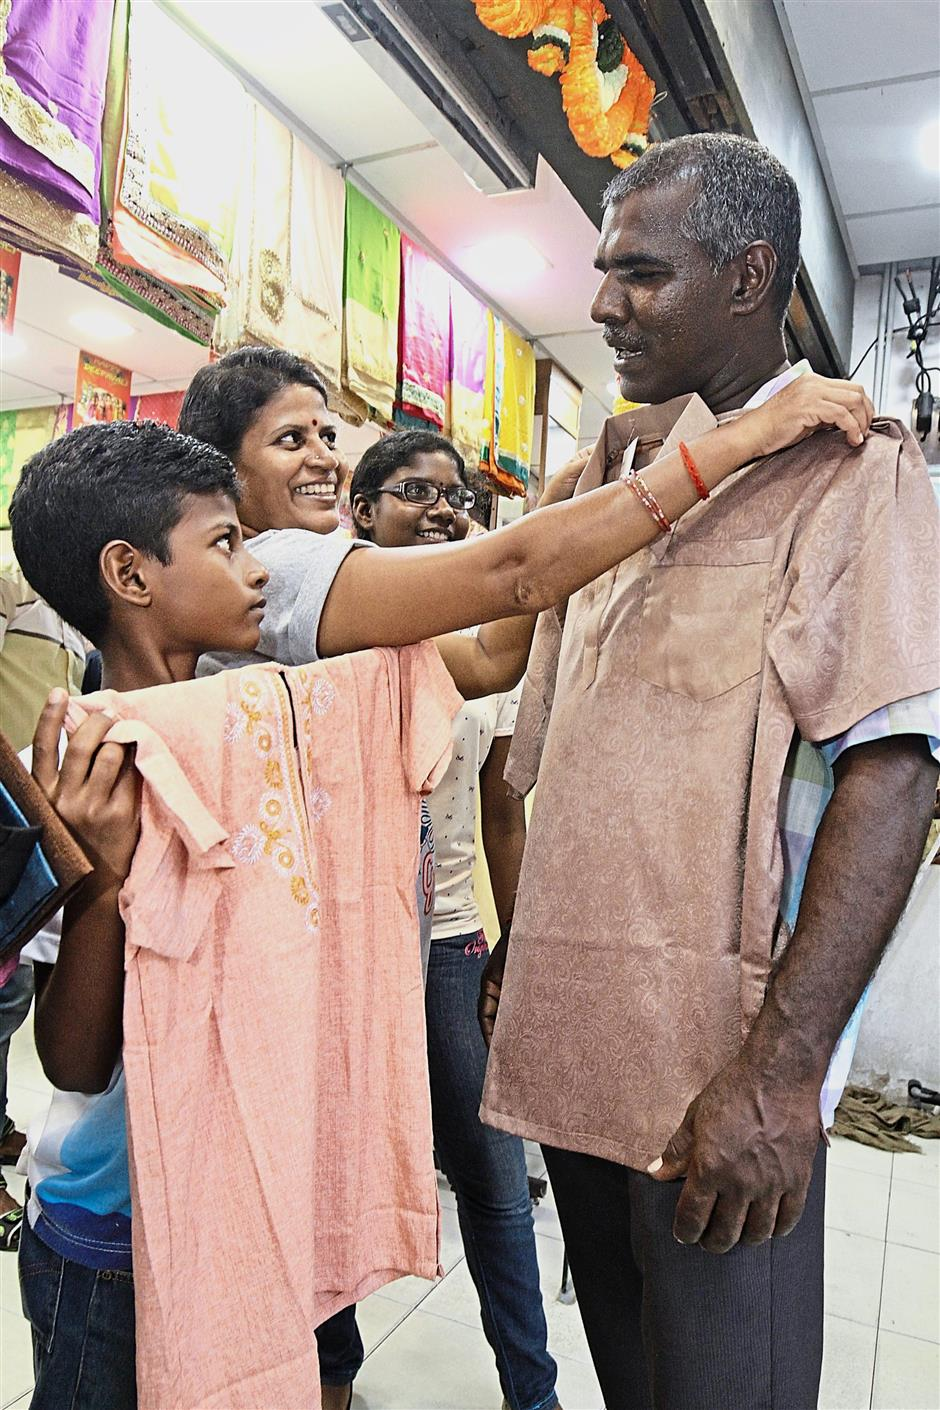 Festive preparations: Thiagarajan shopping for Deepavali attire with his family in Little India, Penang.